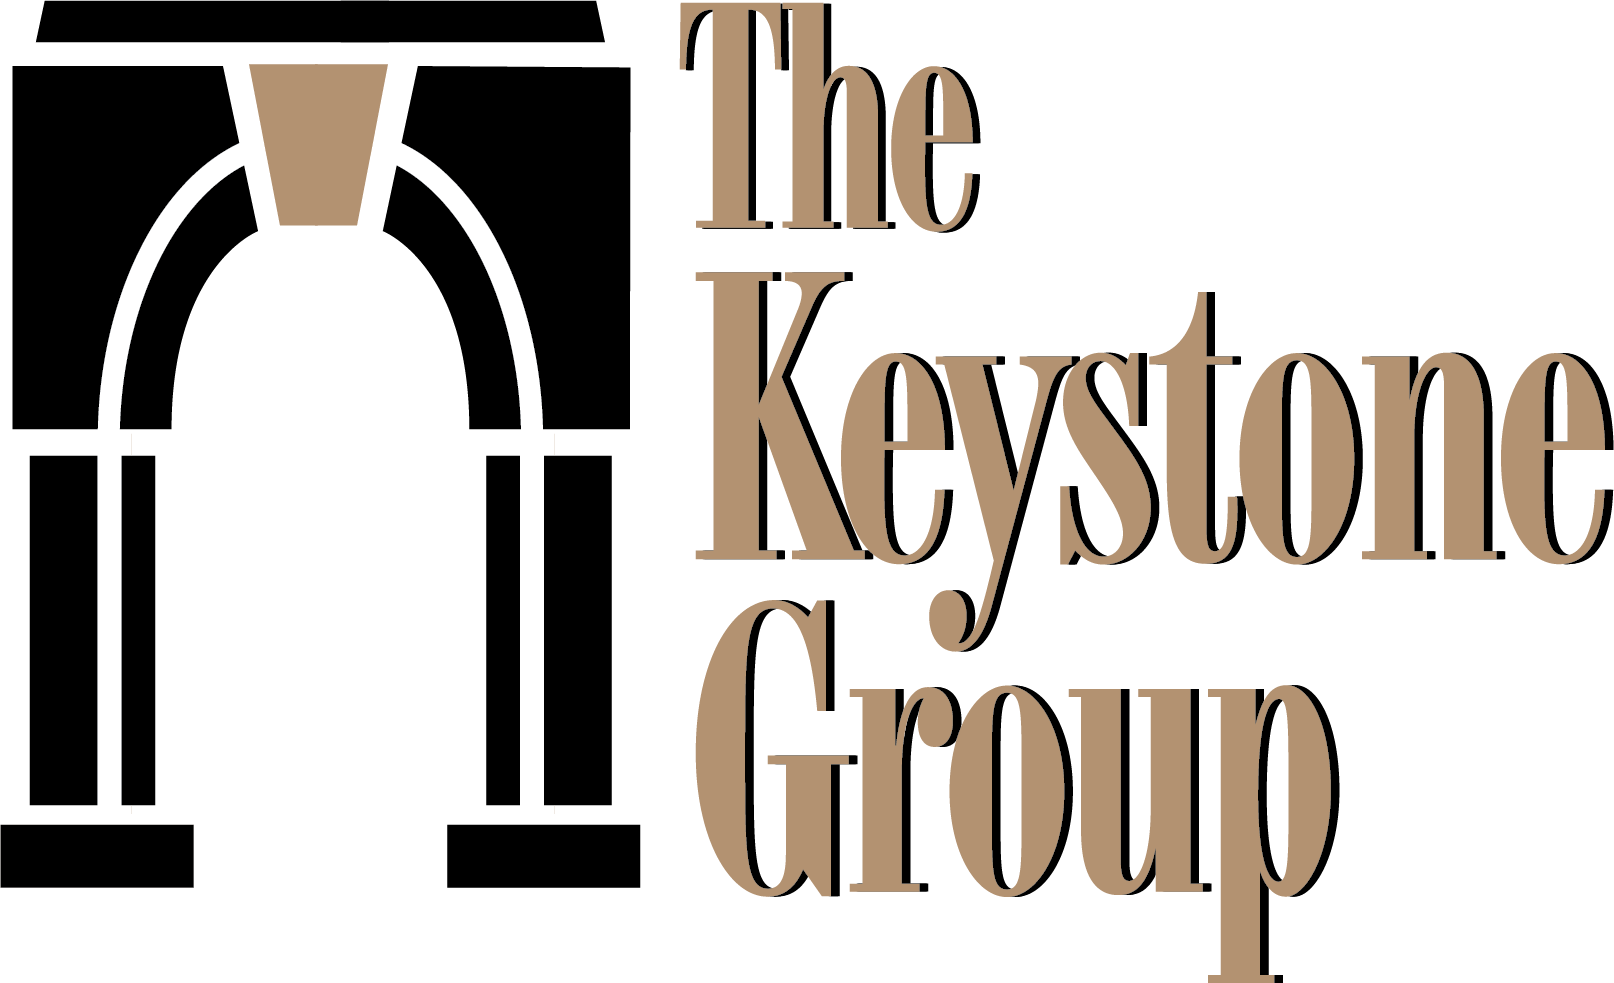 Workforce management - The Keystone Group assumes all Human Resource responsibilities, allowing your business to outsource these functions and focus instead on your core strengths.Services include but are not limited to:• Monitoring and Tracking All Benefits• Developing Employee Handbooks• Safety Training• Recruiting• Performing Employee Disciplinary Actions